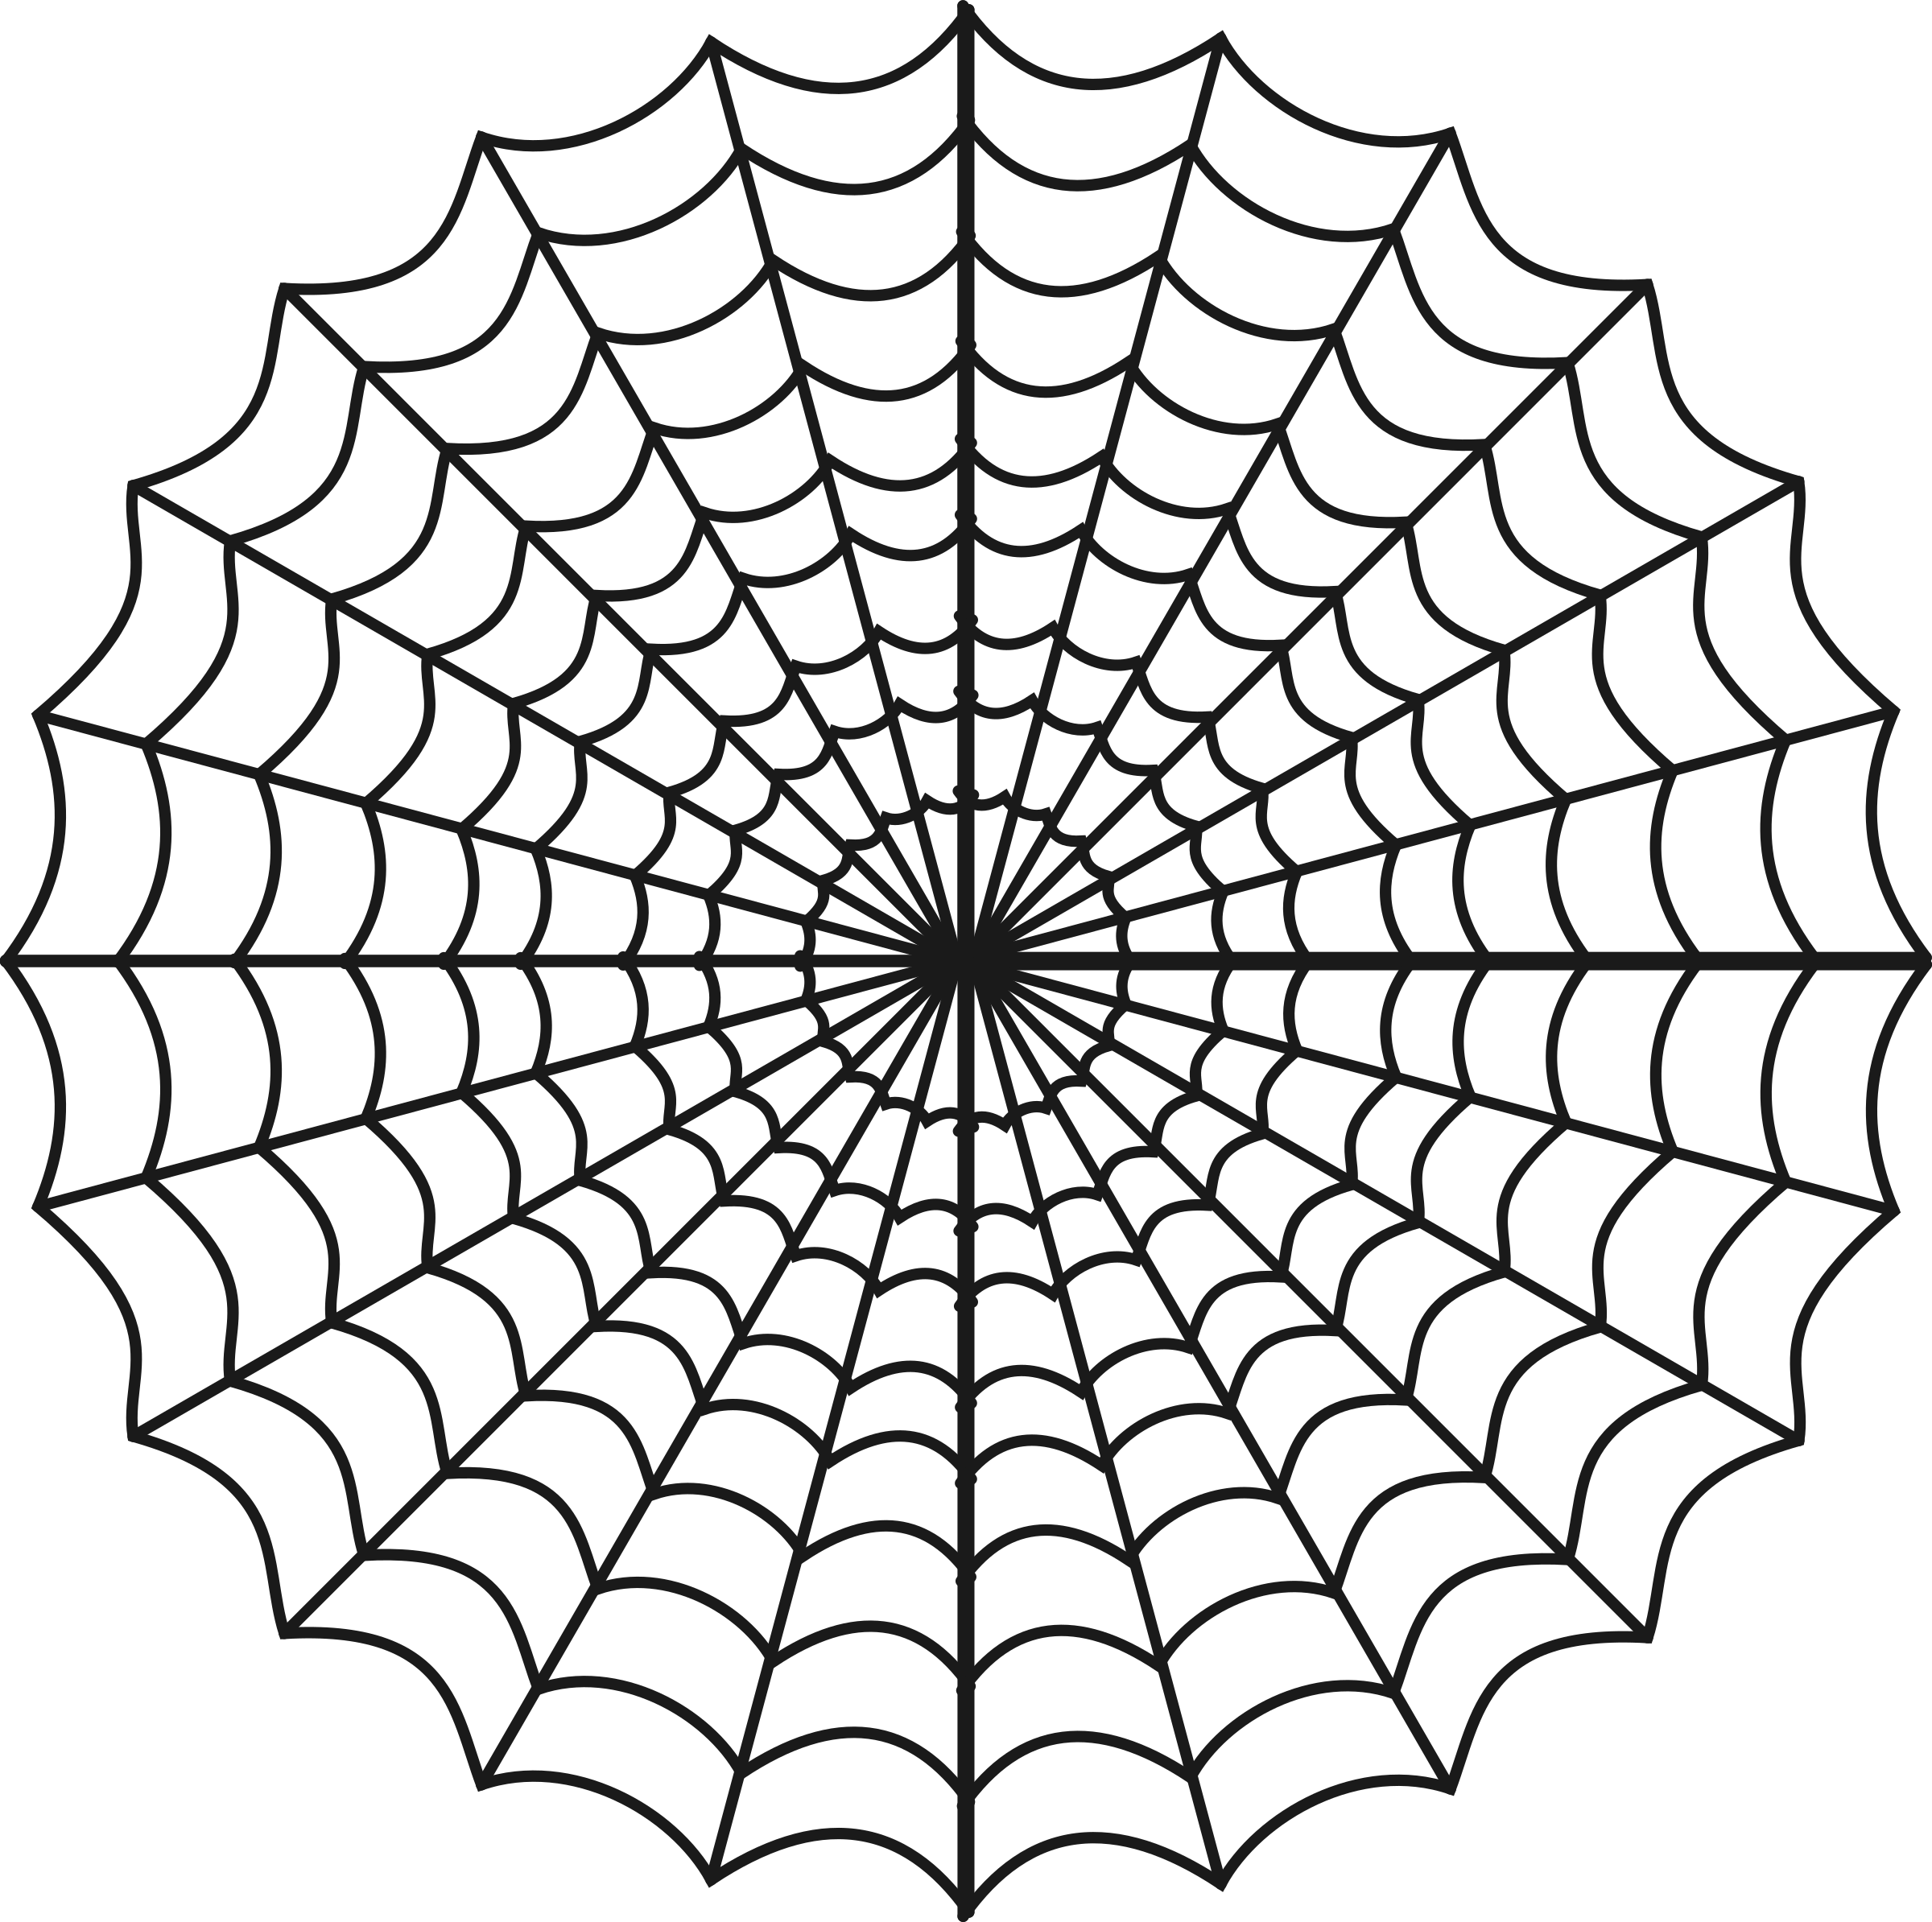 image freeuse Spiders big image png. Web clipart black and white